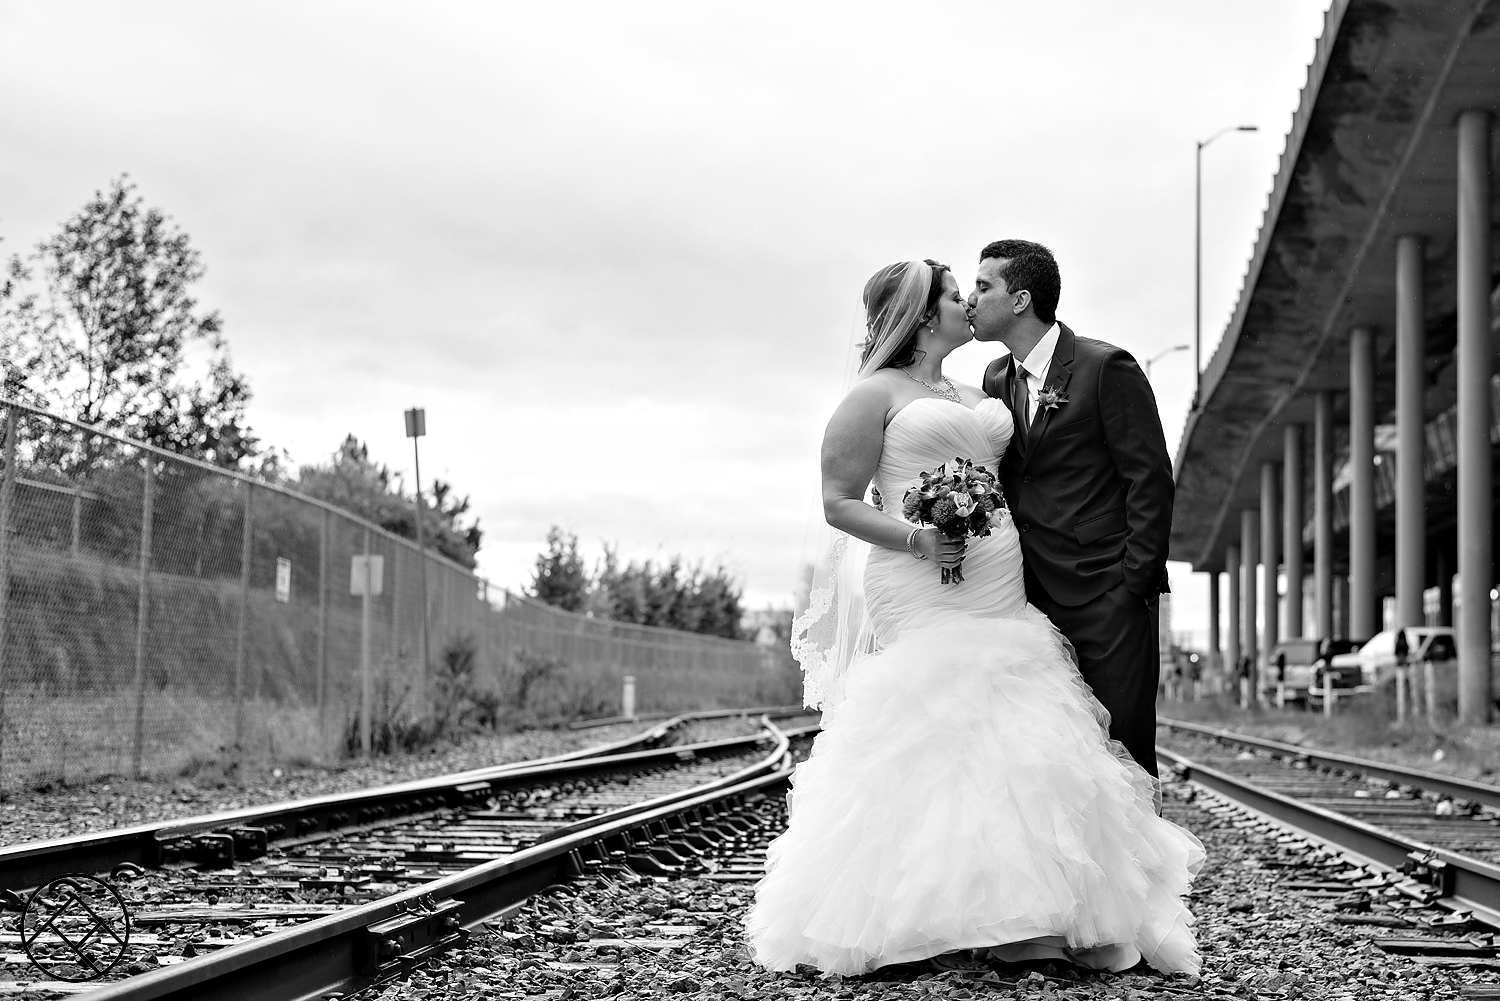 New Westminster Wedding Photos 0002.jpg